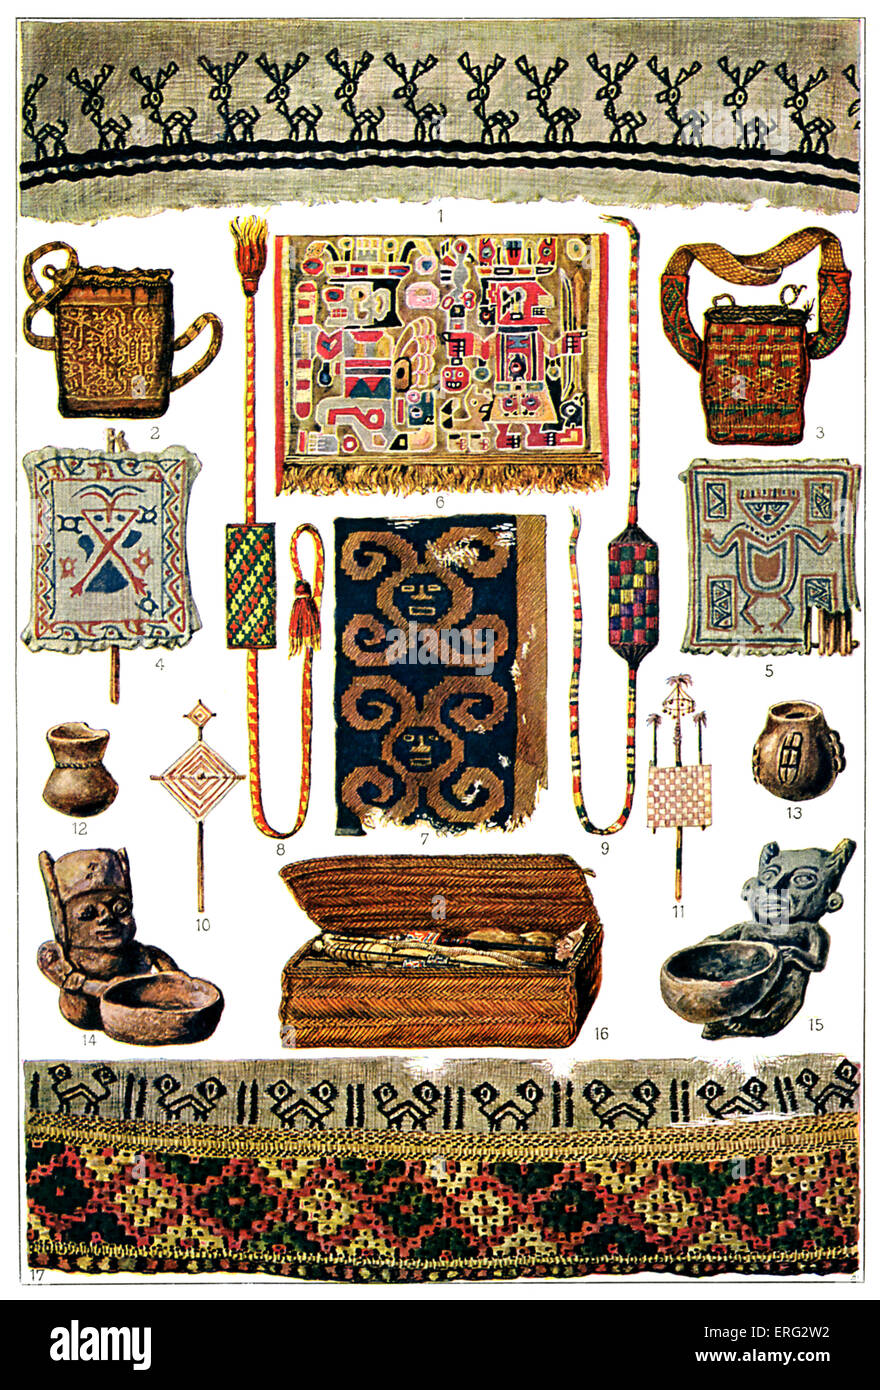 Pre-Columbian Peruvian objects including examples of cotton representational art and bags as well as small pots - Stock Image